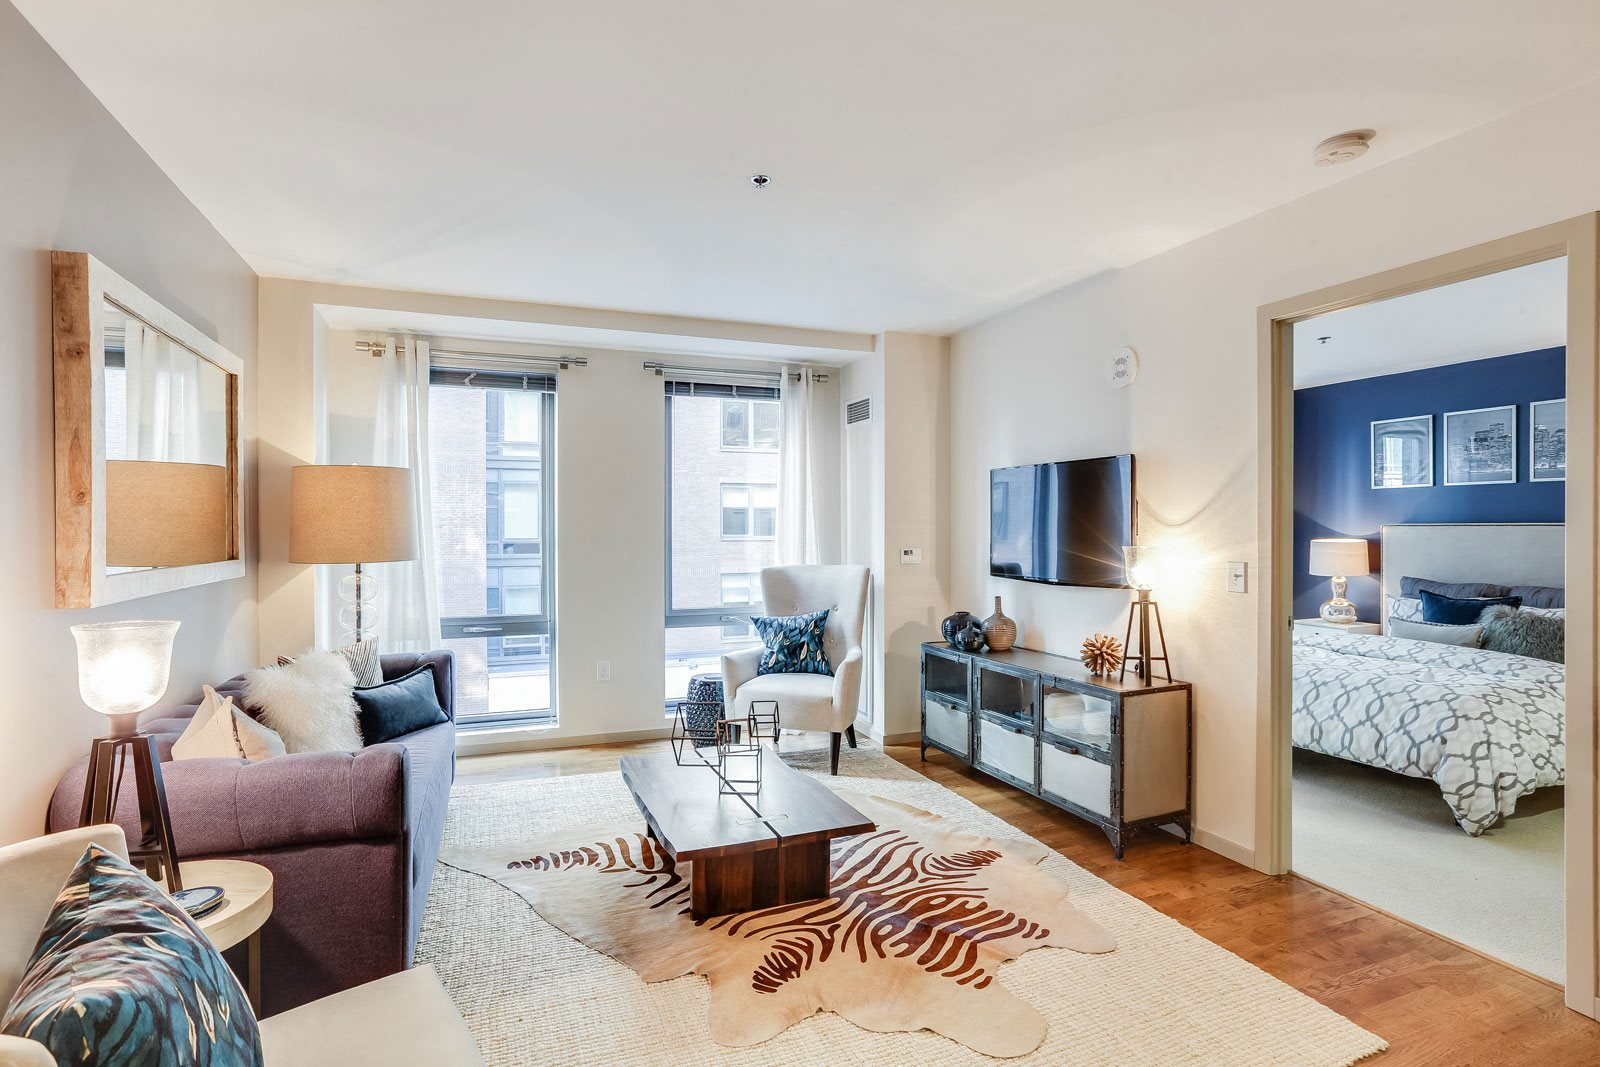 Hardwood floors in kitchen and living areas at The Victor by Windsor, 110 Beverly St, MA